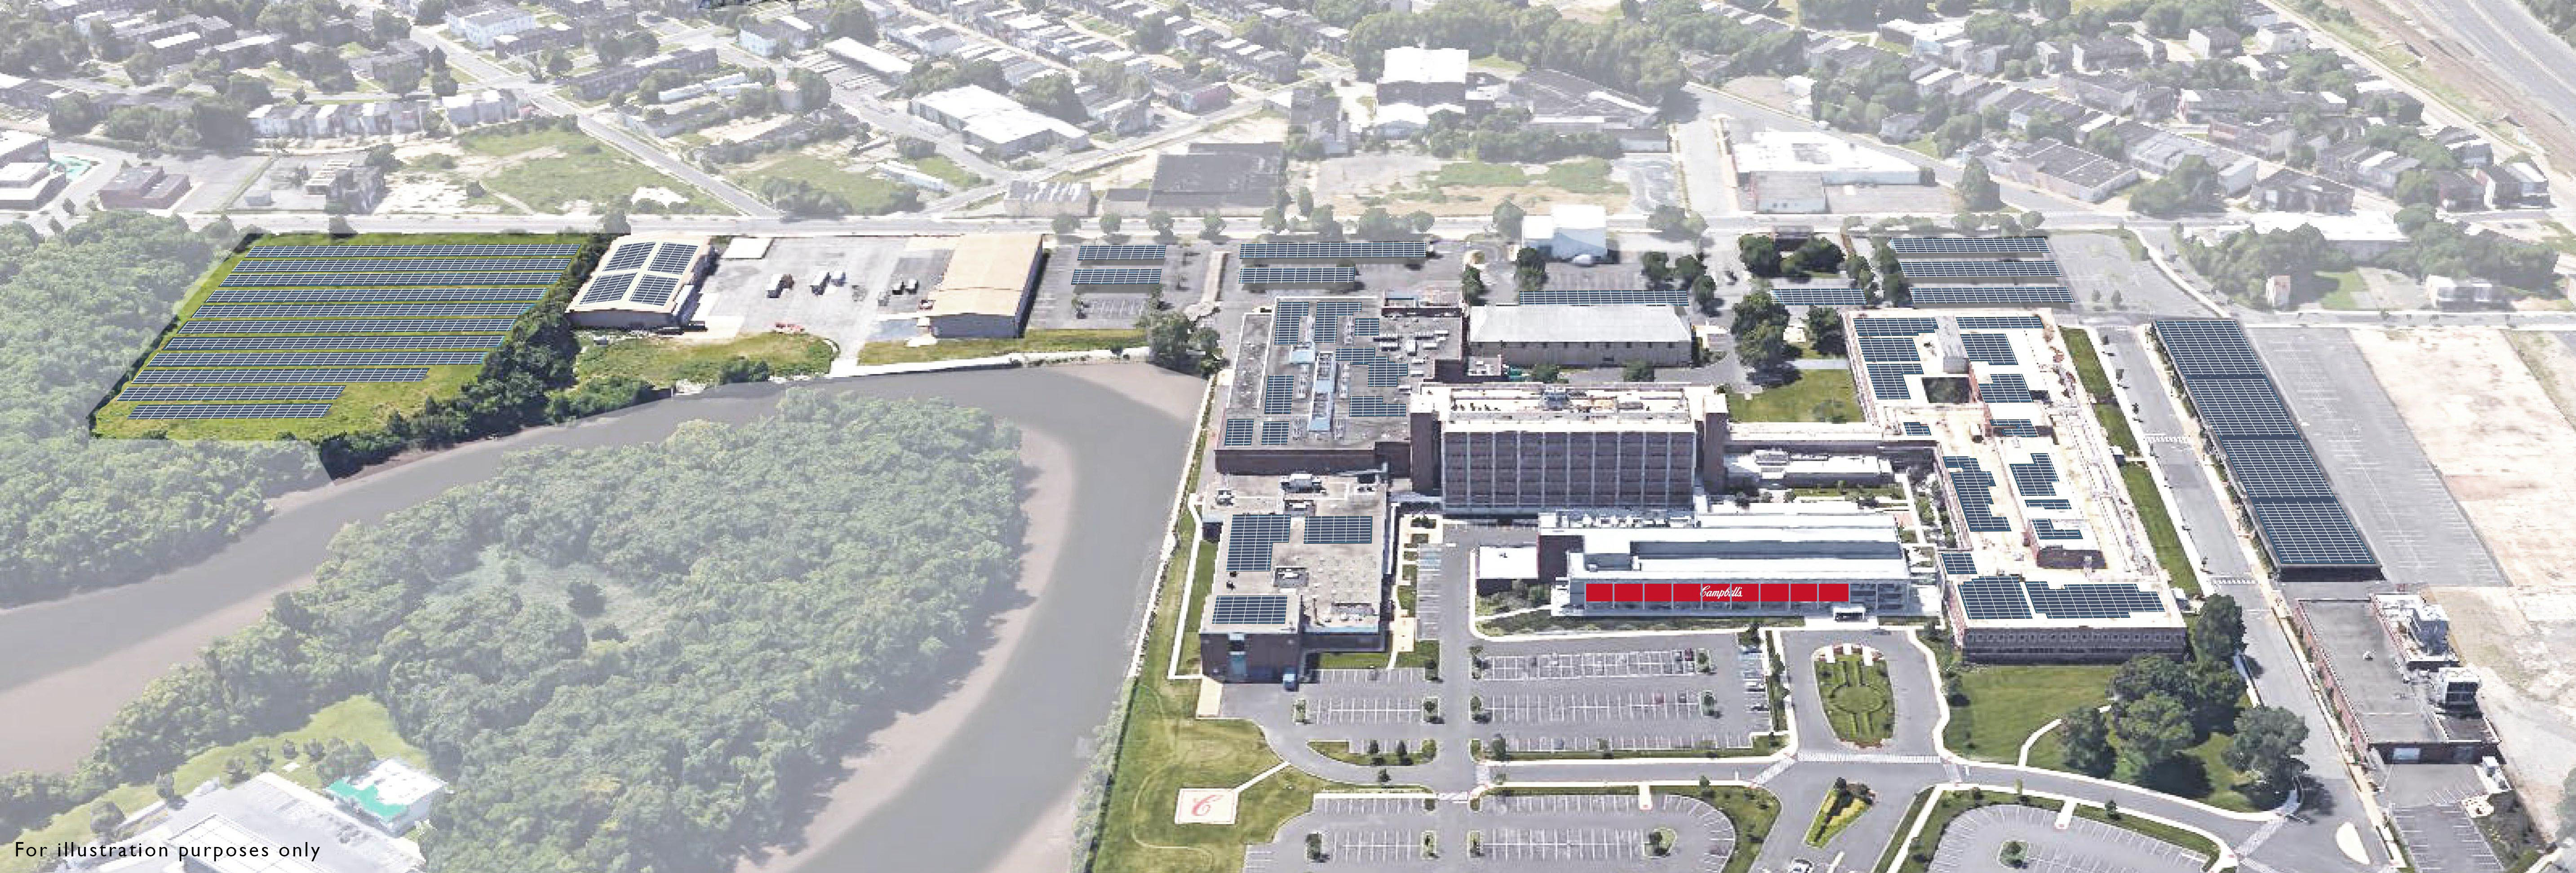 Campbell Soup Company announces new 4.4-megawatt solar array at its World Headquarters in Camden, N.J. (Photo: Business Wire)